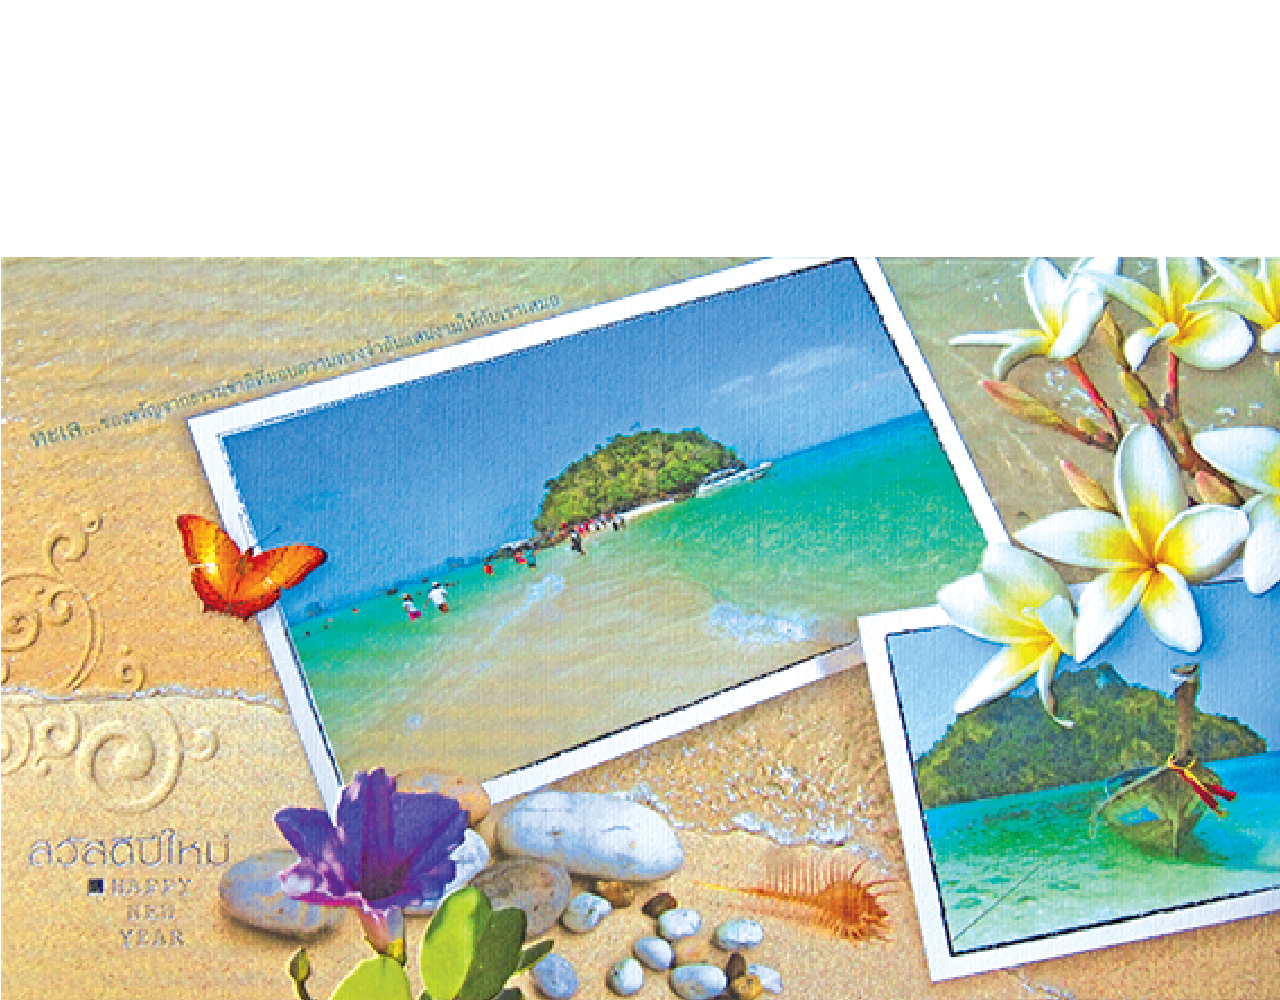 New year card 8×4 inch P 404 ฿ 16.00